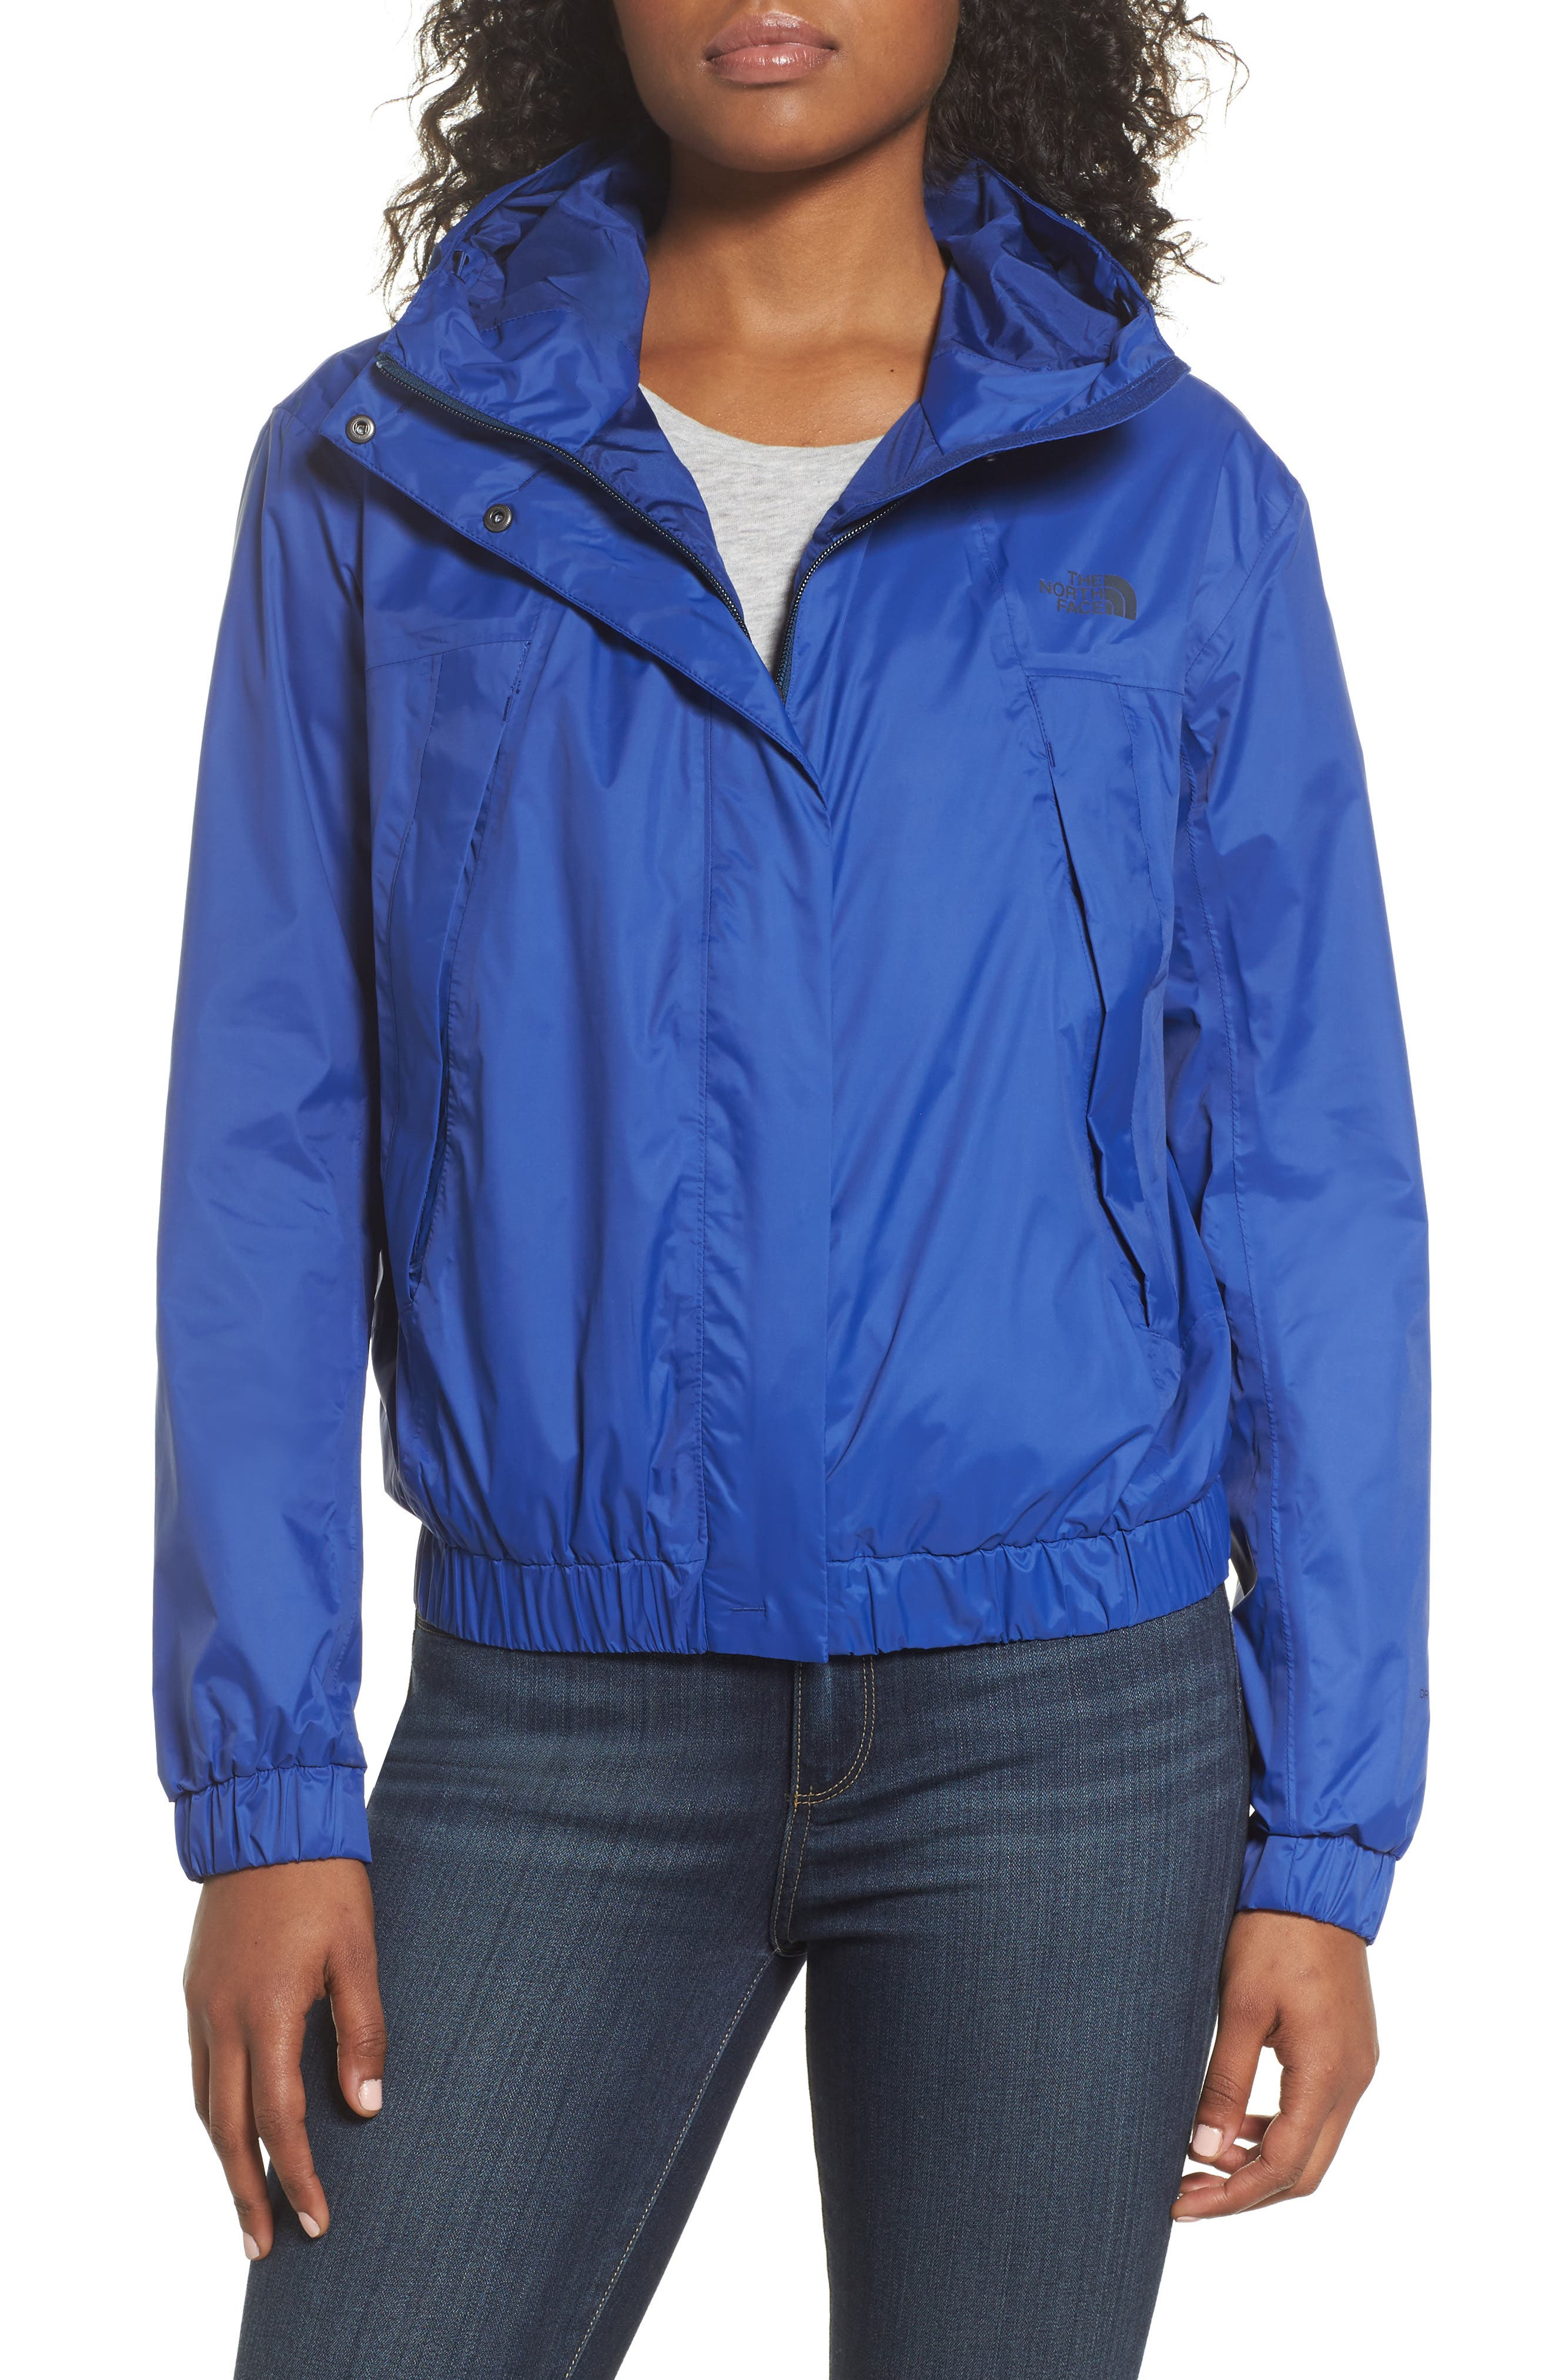 Precita Rain Jacket,                             Main thumbnail 1, color,                             Sodalite Blue